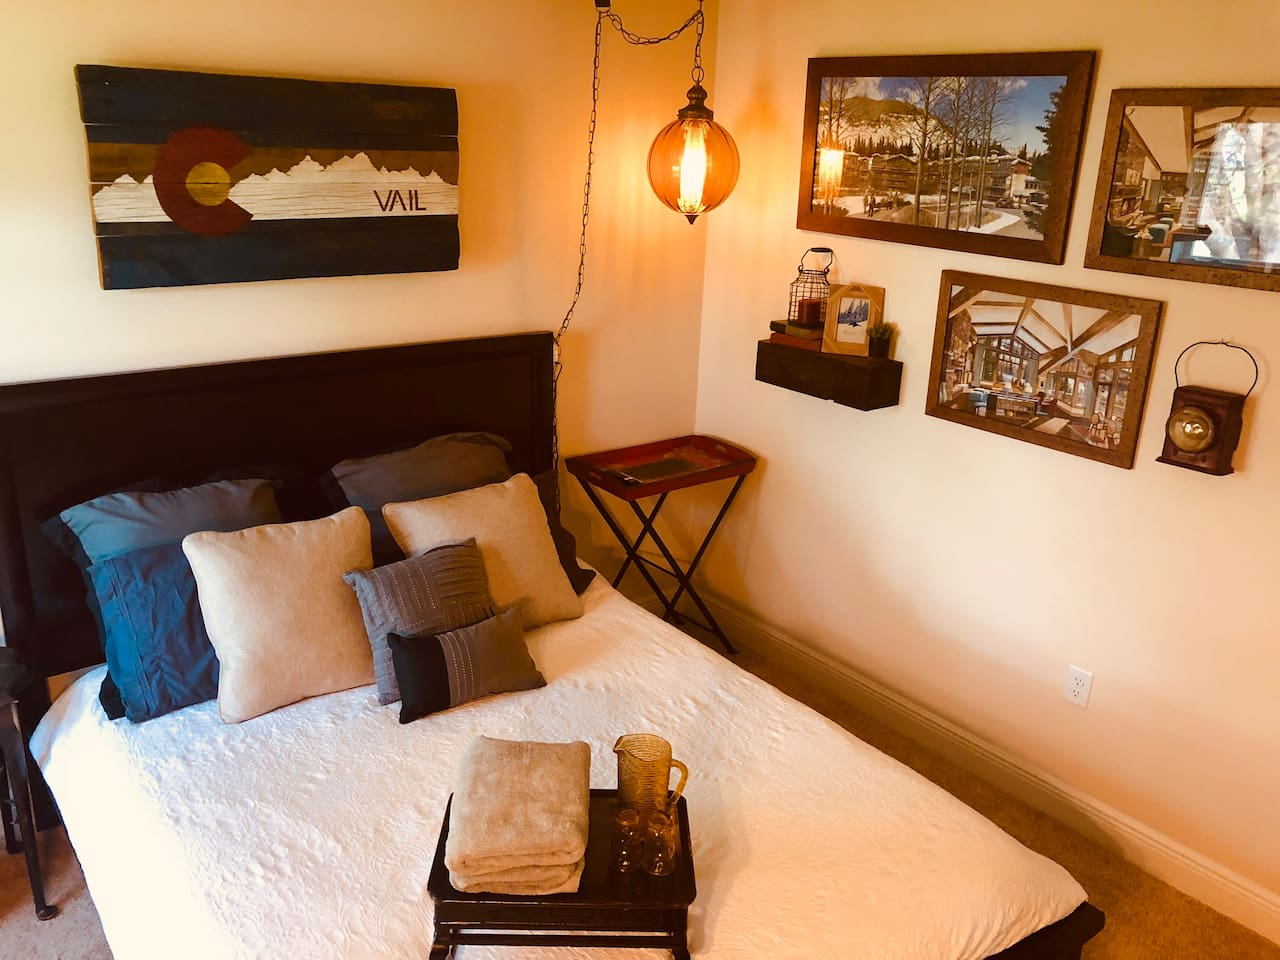 Our Cabin Room has nice warm colors and lots of cool antiques :) Check out our Beach Room for a second room option.